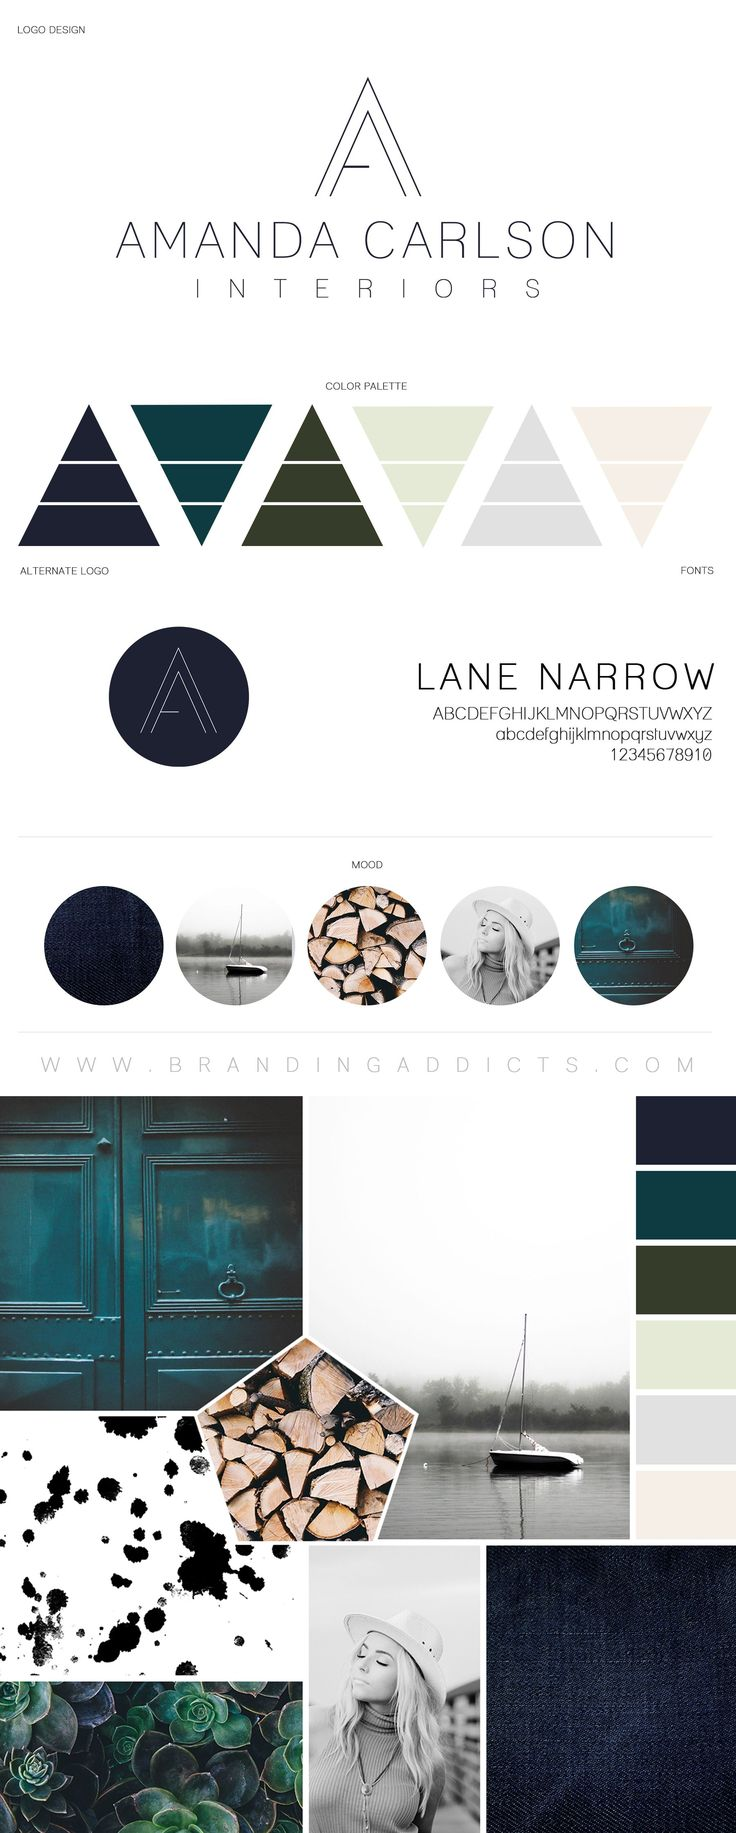 Branding Addicts New Brand Board. Modern and Tranquil Design. Rustic meets relaxation with a touch of industrial design. Wood logs. Interior Designer. Succulents and Denim Texture. Added coolness with the cohesion of Emerald, Forrest Green, Grey and Mint Green. Stylish relaxation and comfort all with a pop of boldness.  Professional Business Branding by Designer Laine Napoli. Web Design, Logo, Mood Board, Brand Boards, and more. Contact for Pricing: www.brandingaddicts.com